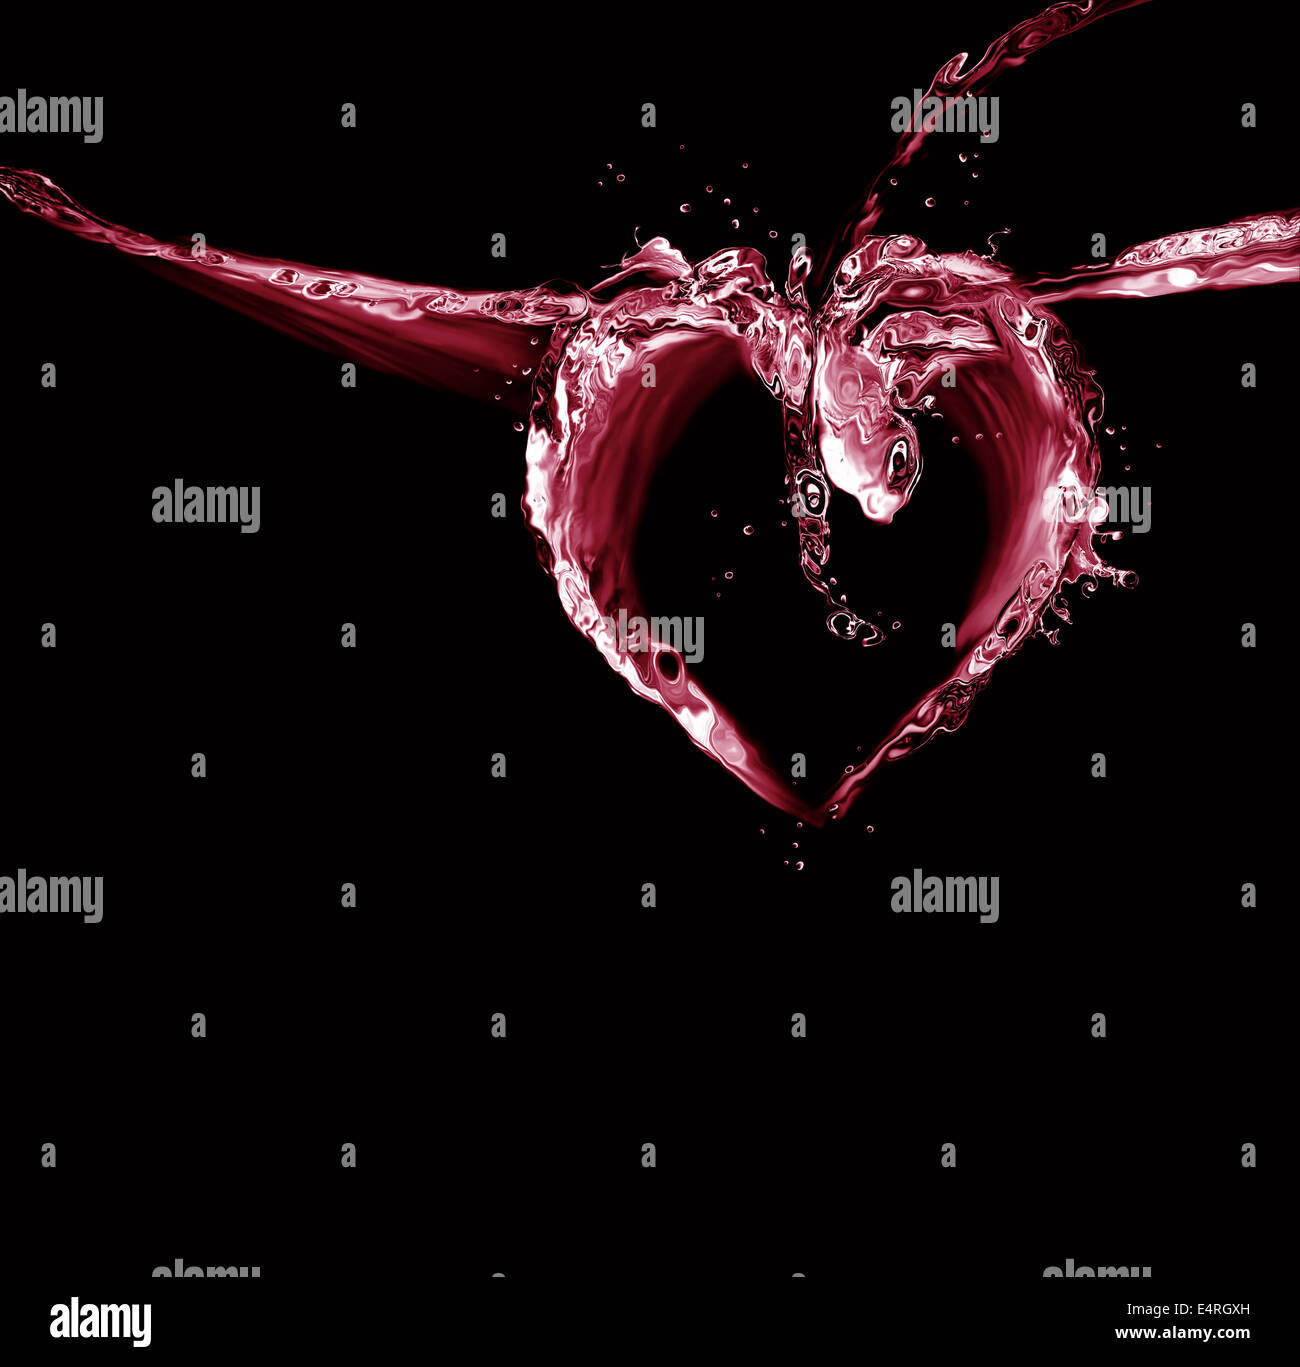 A heart made of red liquid on black. - Stock Image